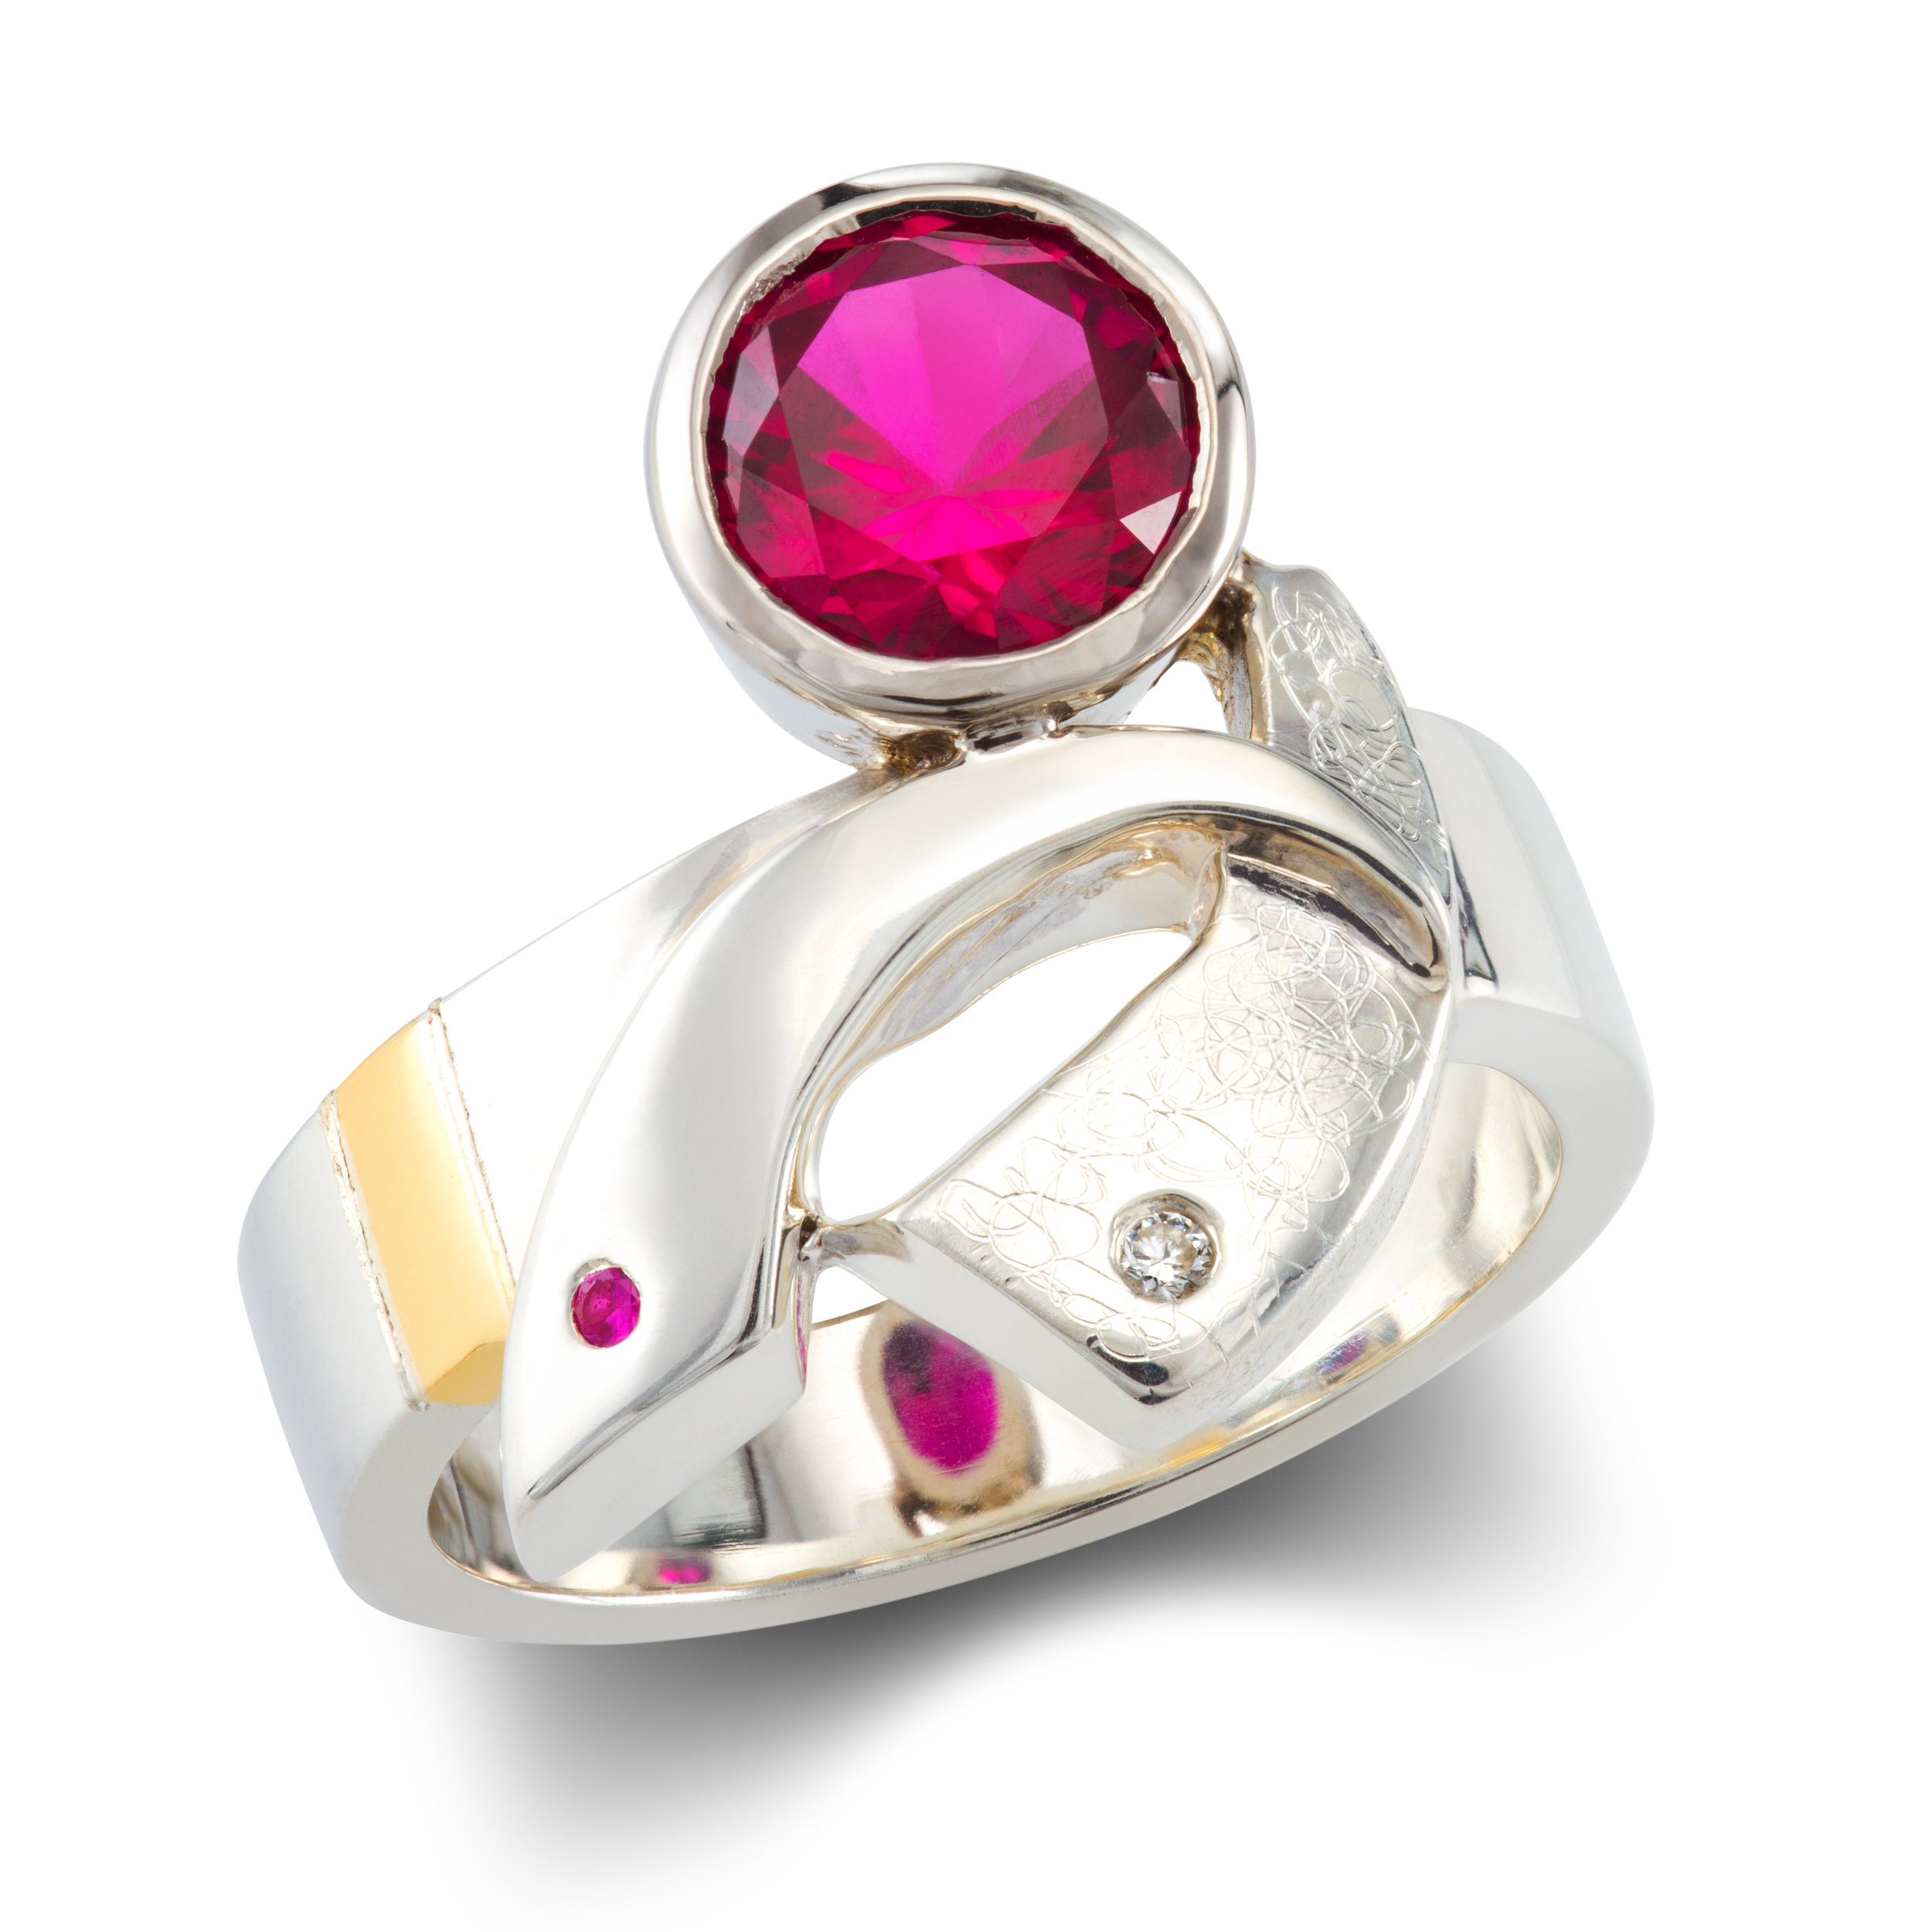 Silver and 9ct yellow gold dress ring (with a palladium rubover)set with two lab-created rubies and a round brilliant cut diamond - £610